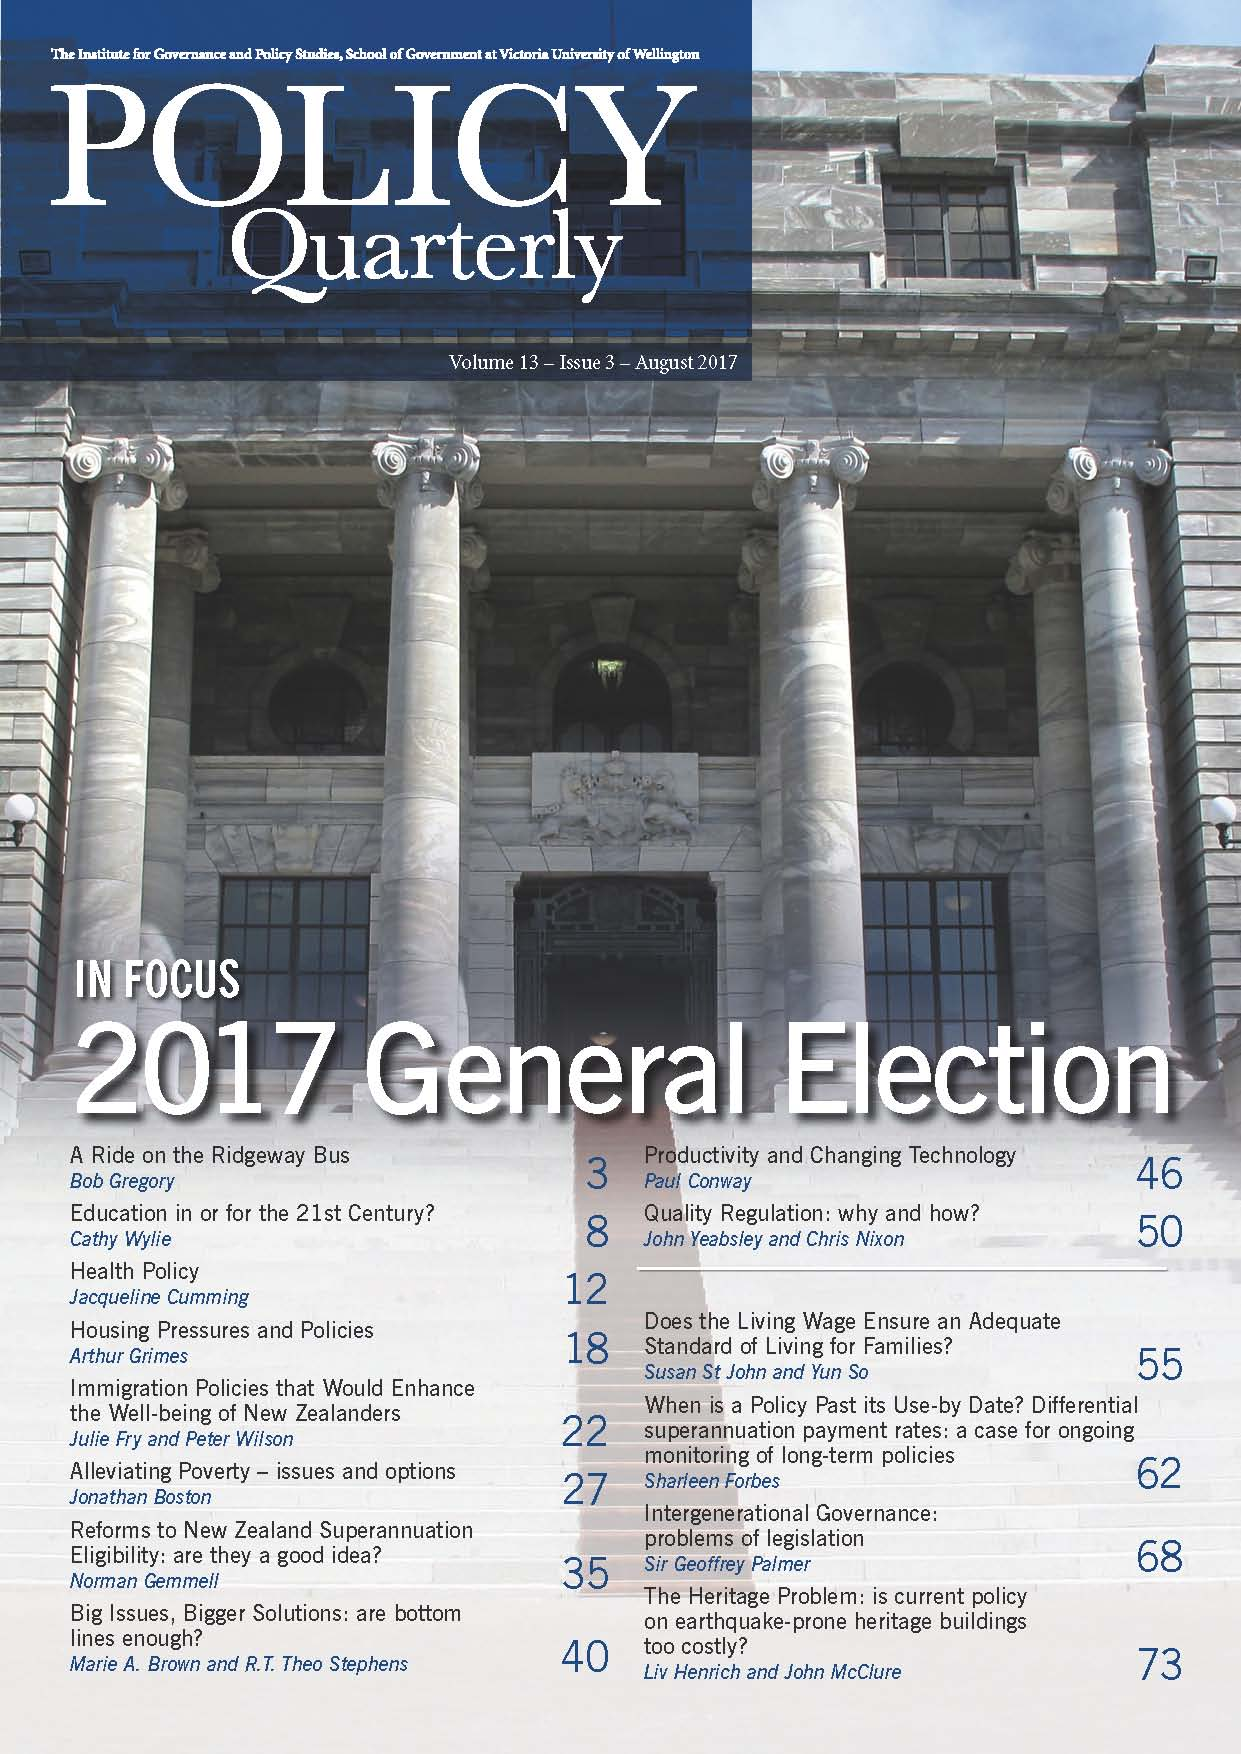 Policy Quarterly volume 13 issue 3 2017